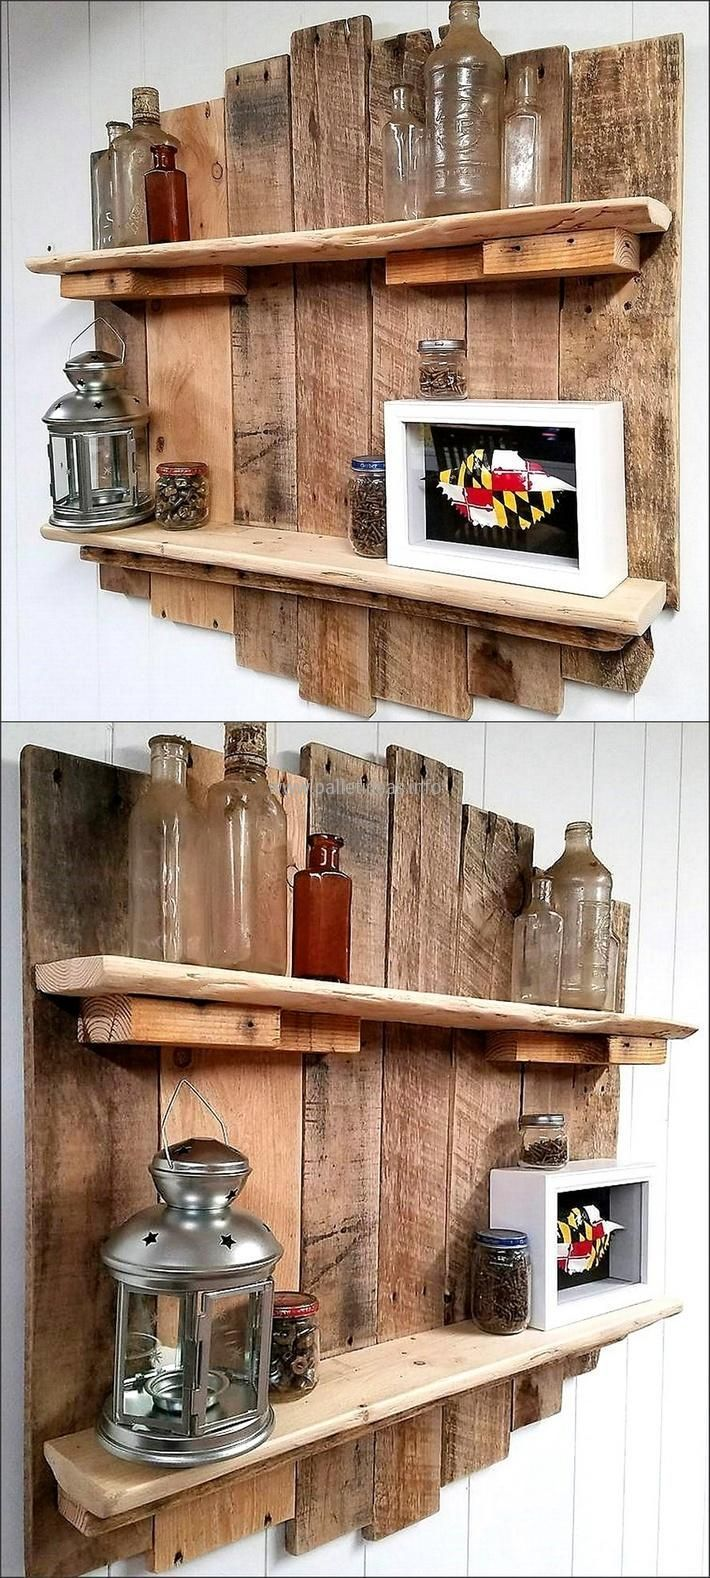 best peddler mall booth ideas images on pinterest bricolage